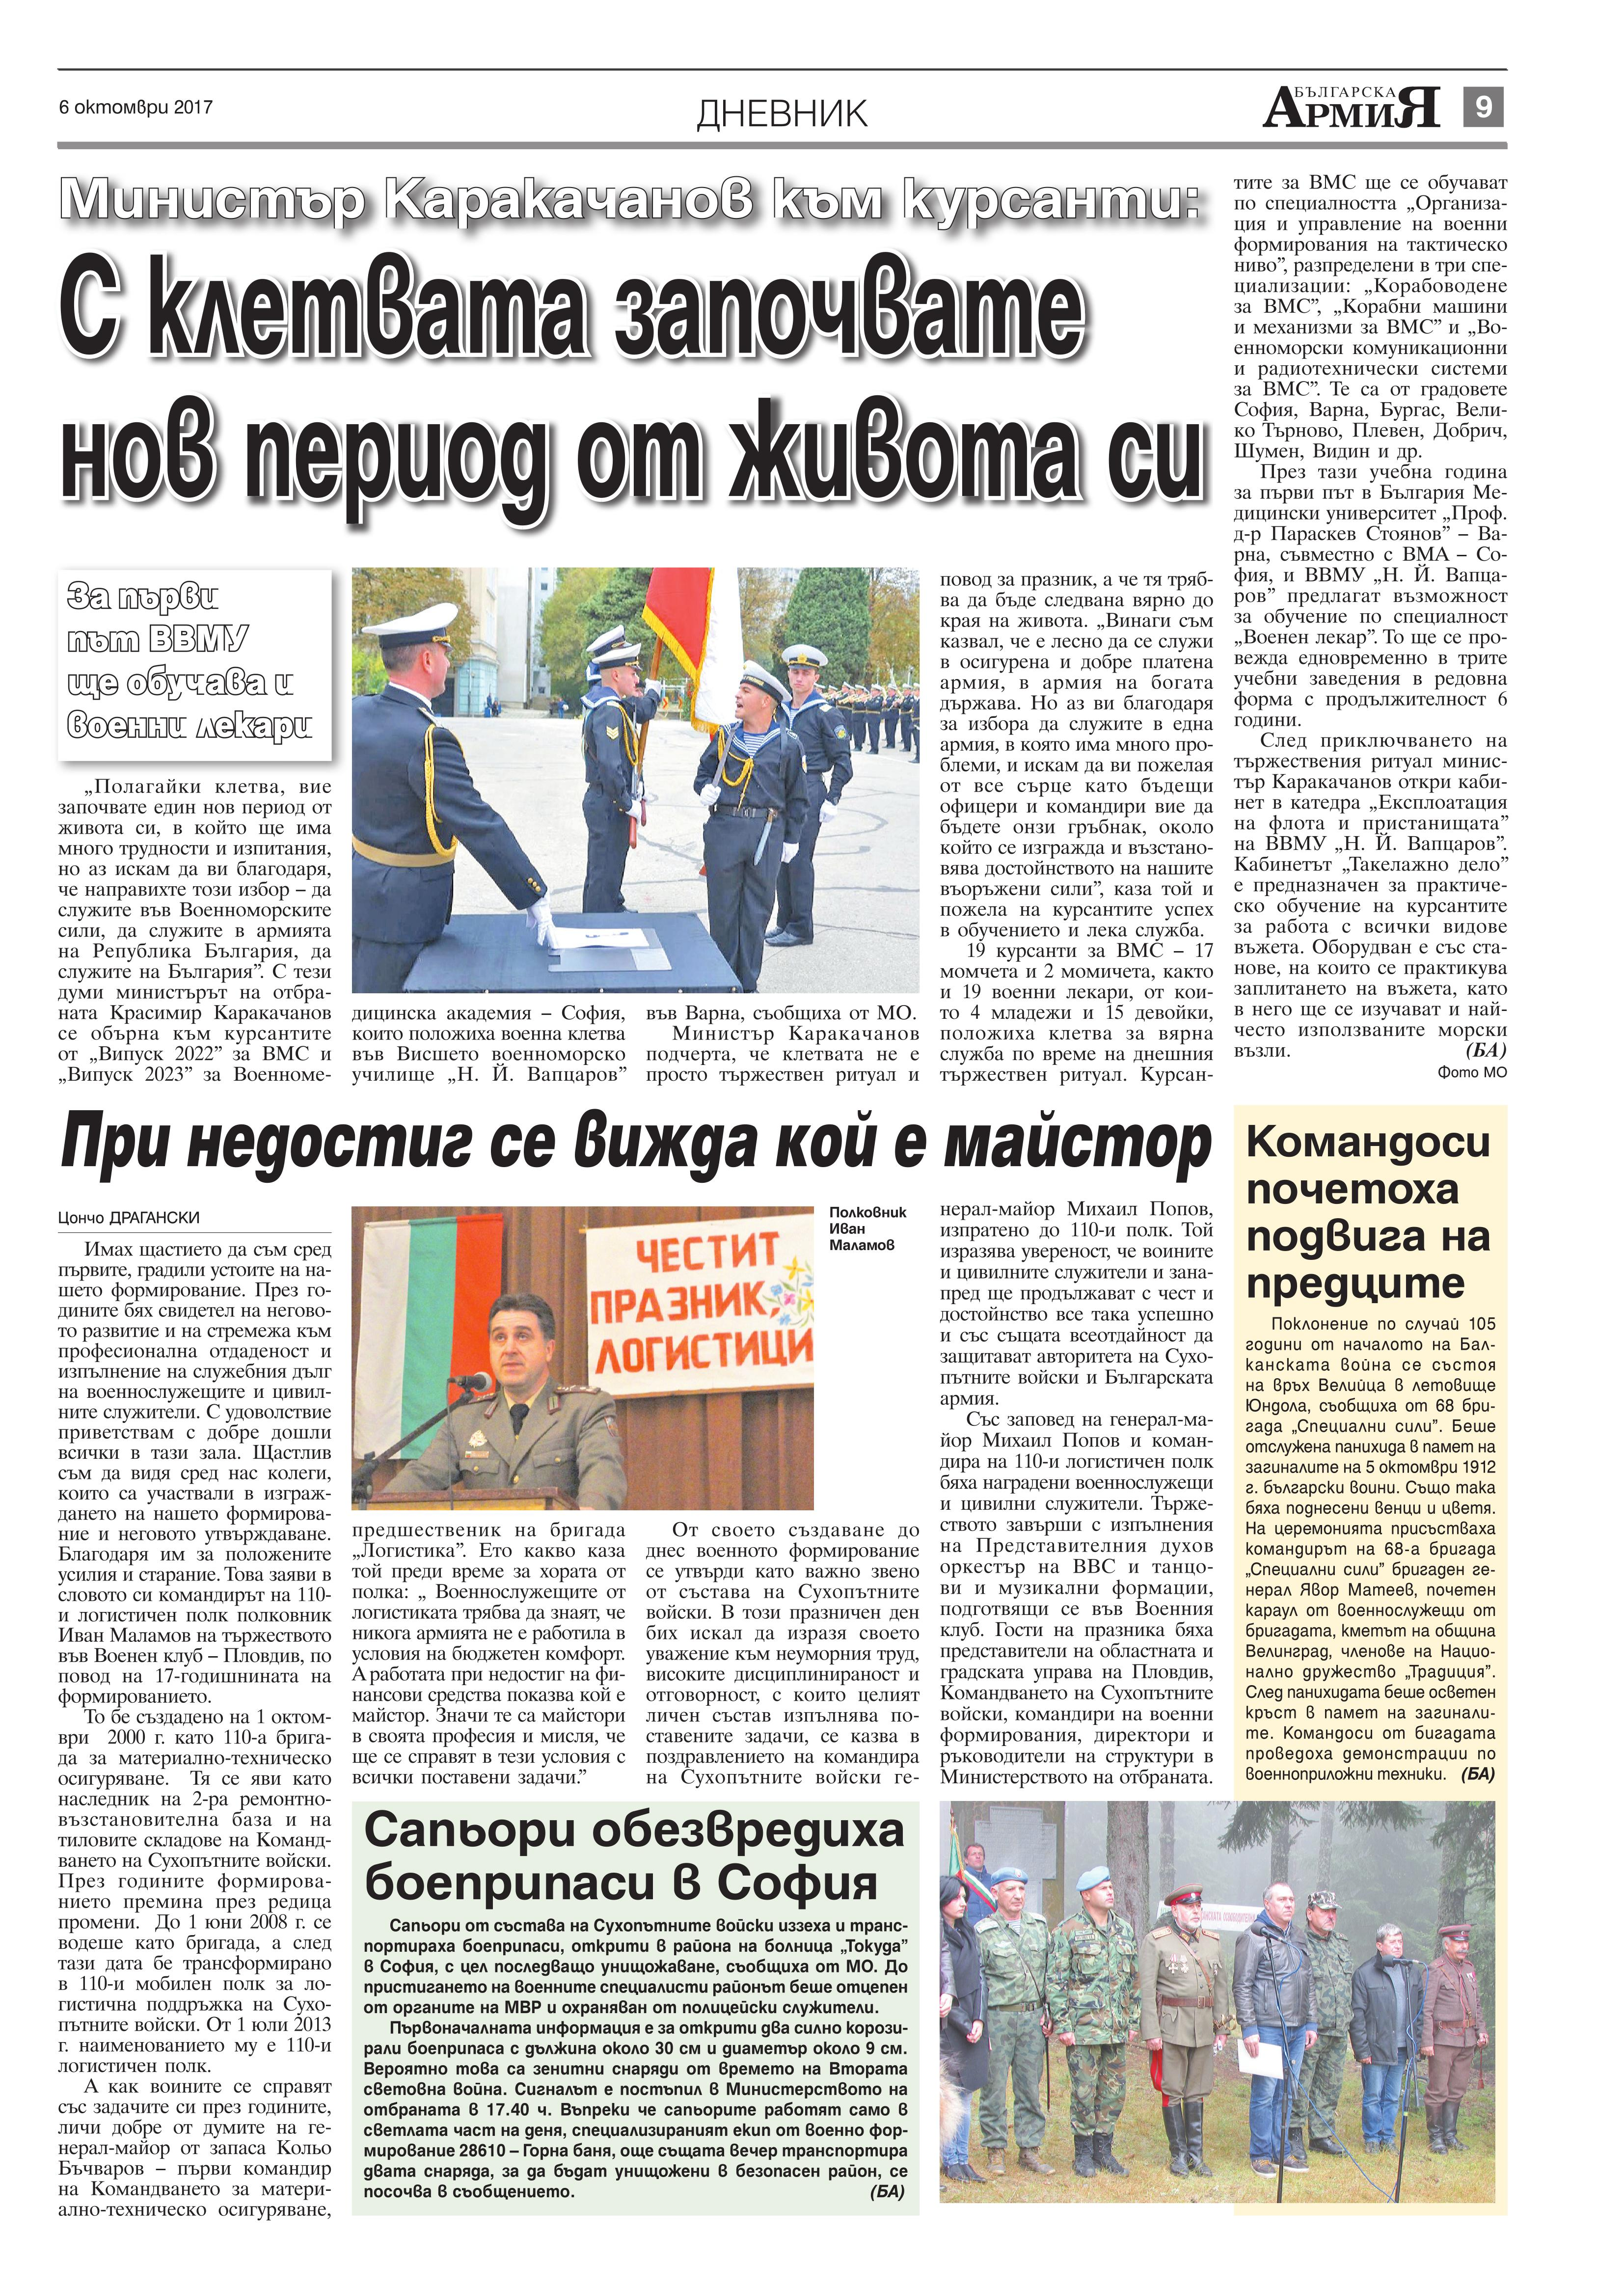 http://armymedia.bg/wp-content/uploads/2015/06/09.page1_-31.jpg